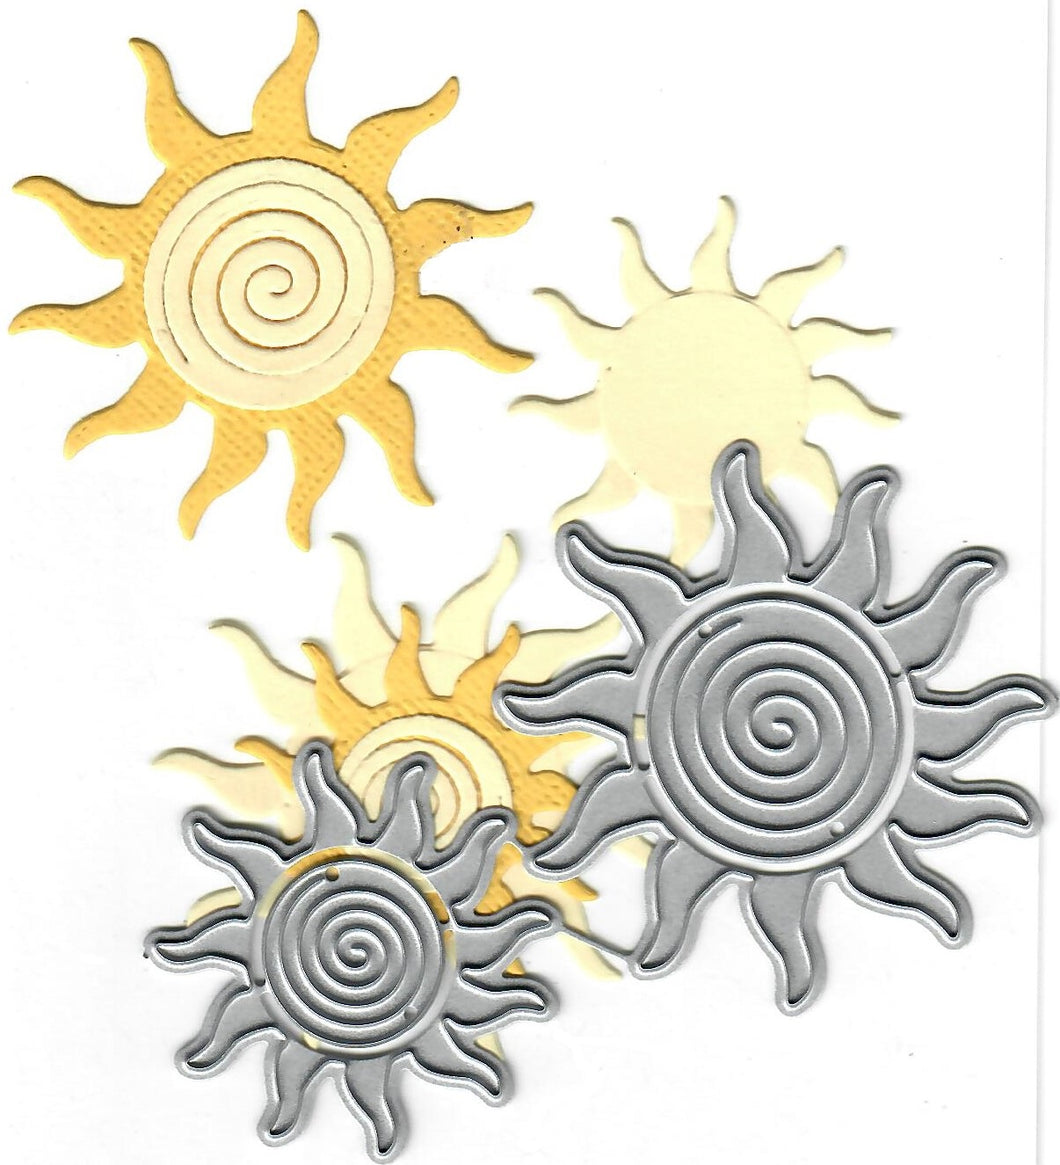 Dies ... to die for metal cutting die - Swirly sun